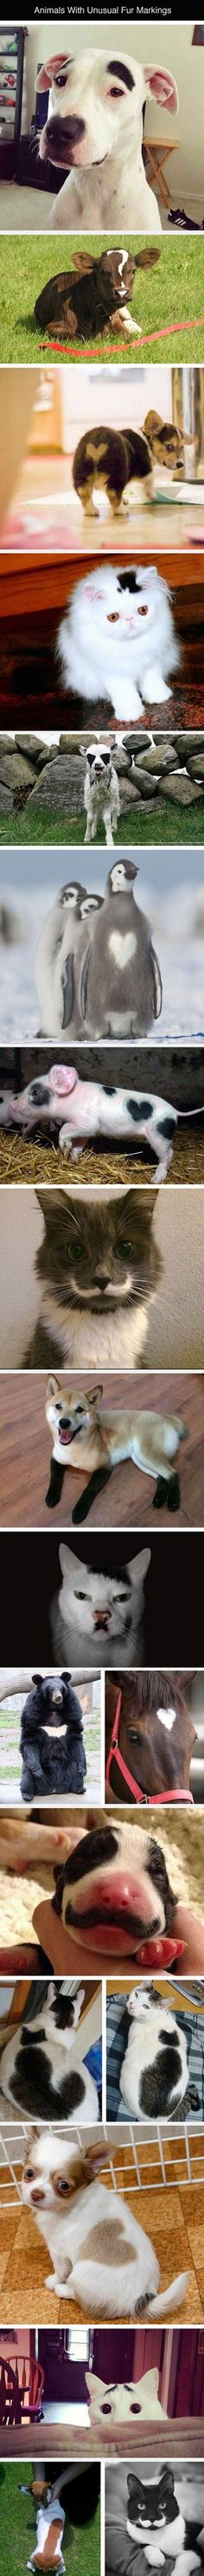 Animals With Unusual Fur Markings. That poor dog!! Lol